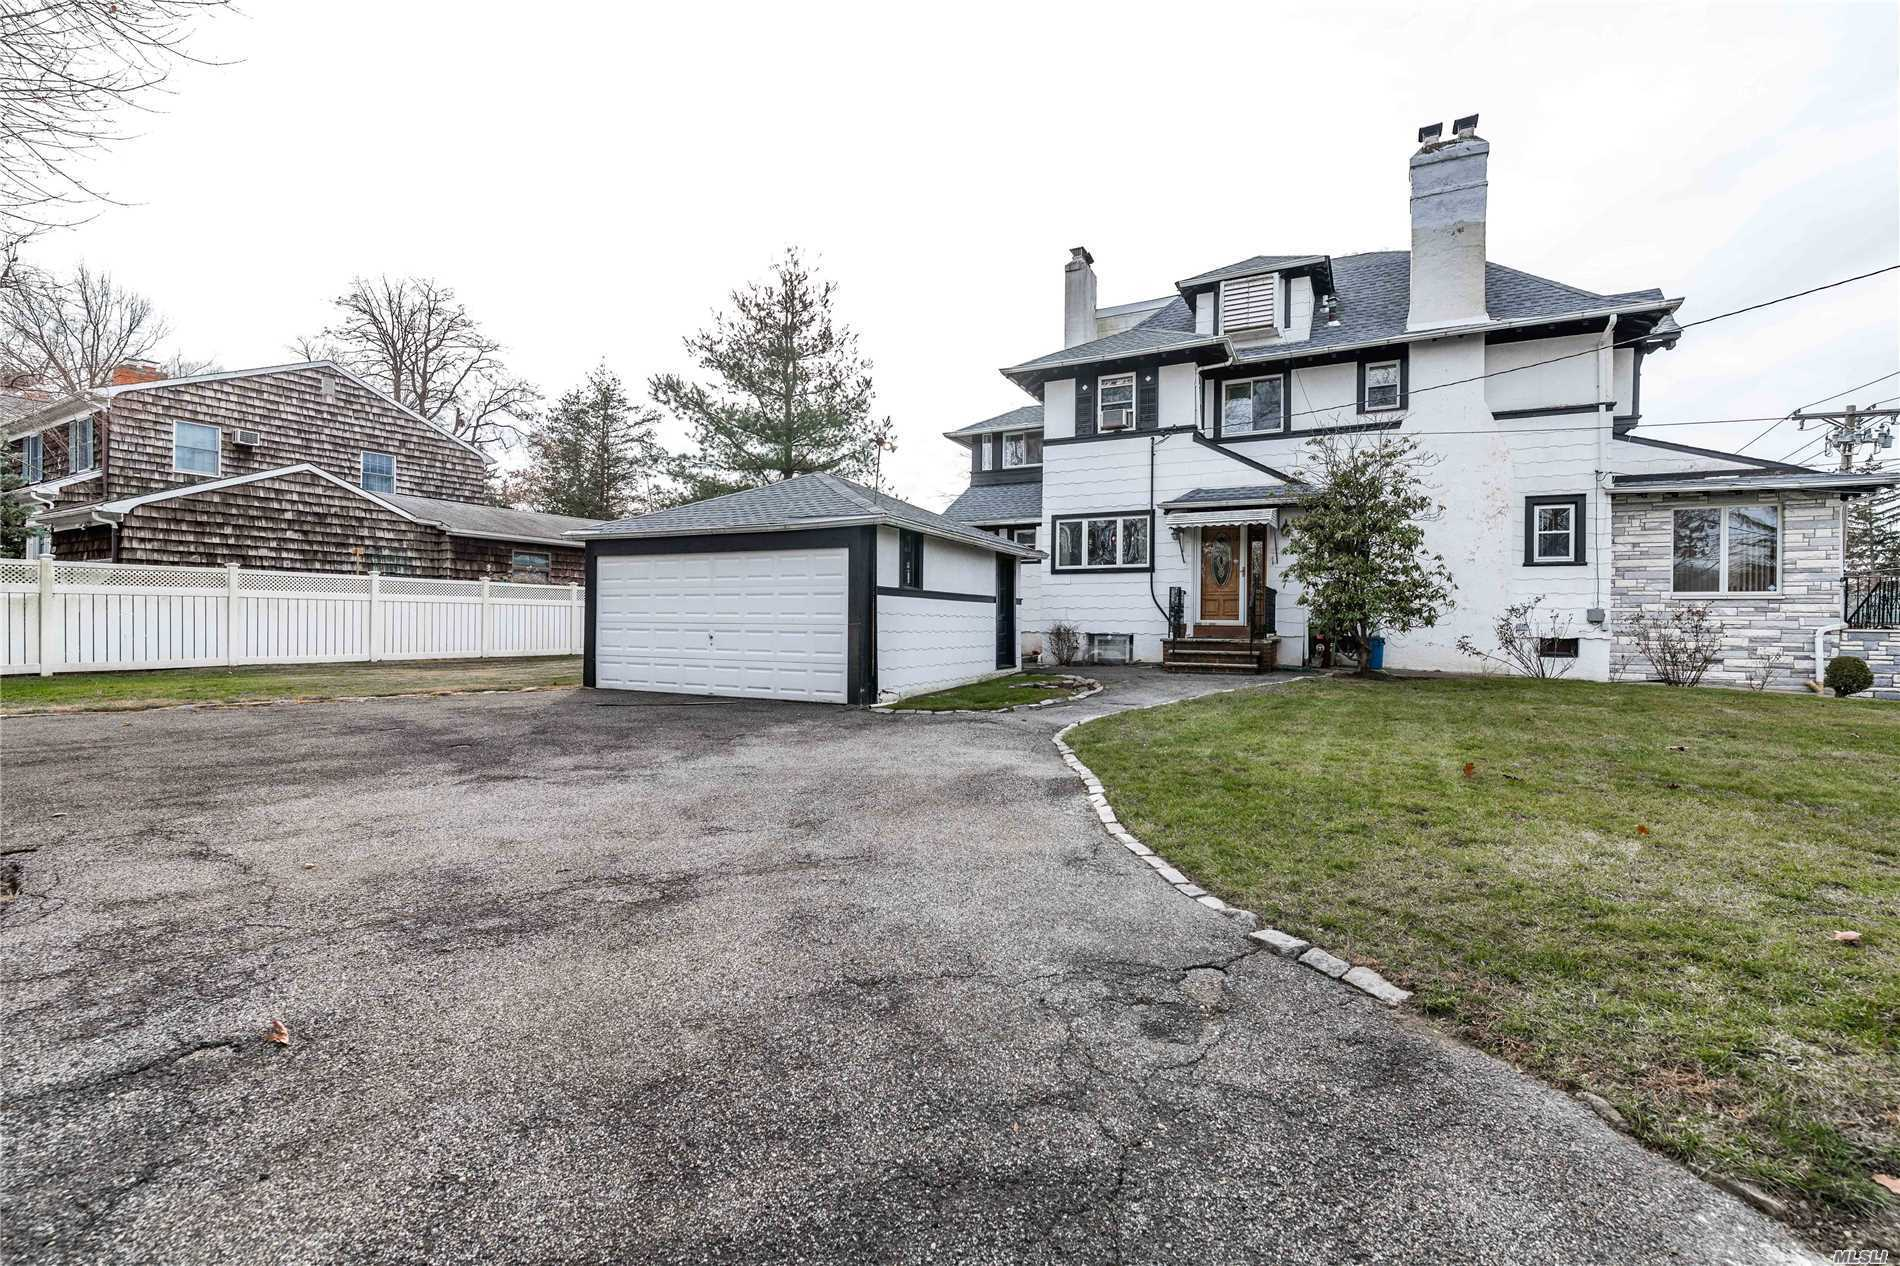 Handsome Tudor-Esque Colonial In Douglaston Neighborhood,  Featuring Large Finished Basement, Master Suite With Dressing Room And A Oversized Guest Suite With Full Bathroom. This Spacious Home Is Nestled On A Large Land 94X100 With Old World Charm And Details Thru-Out!